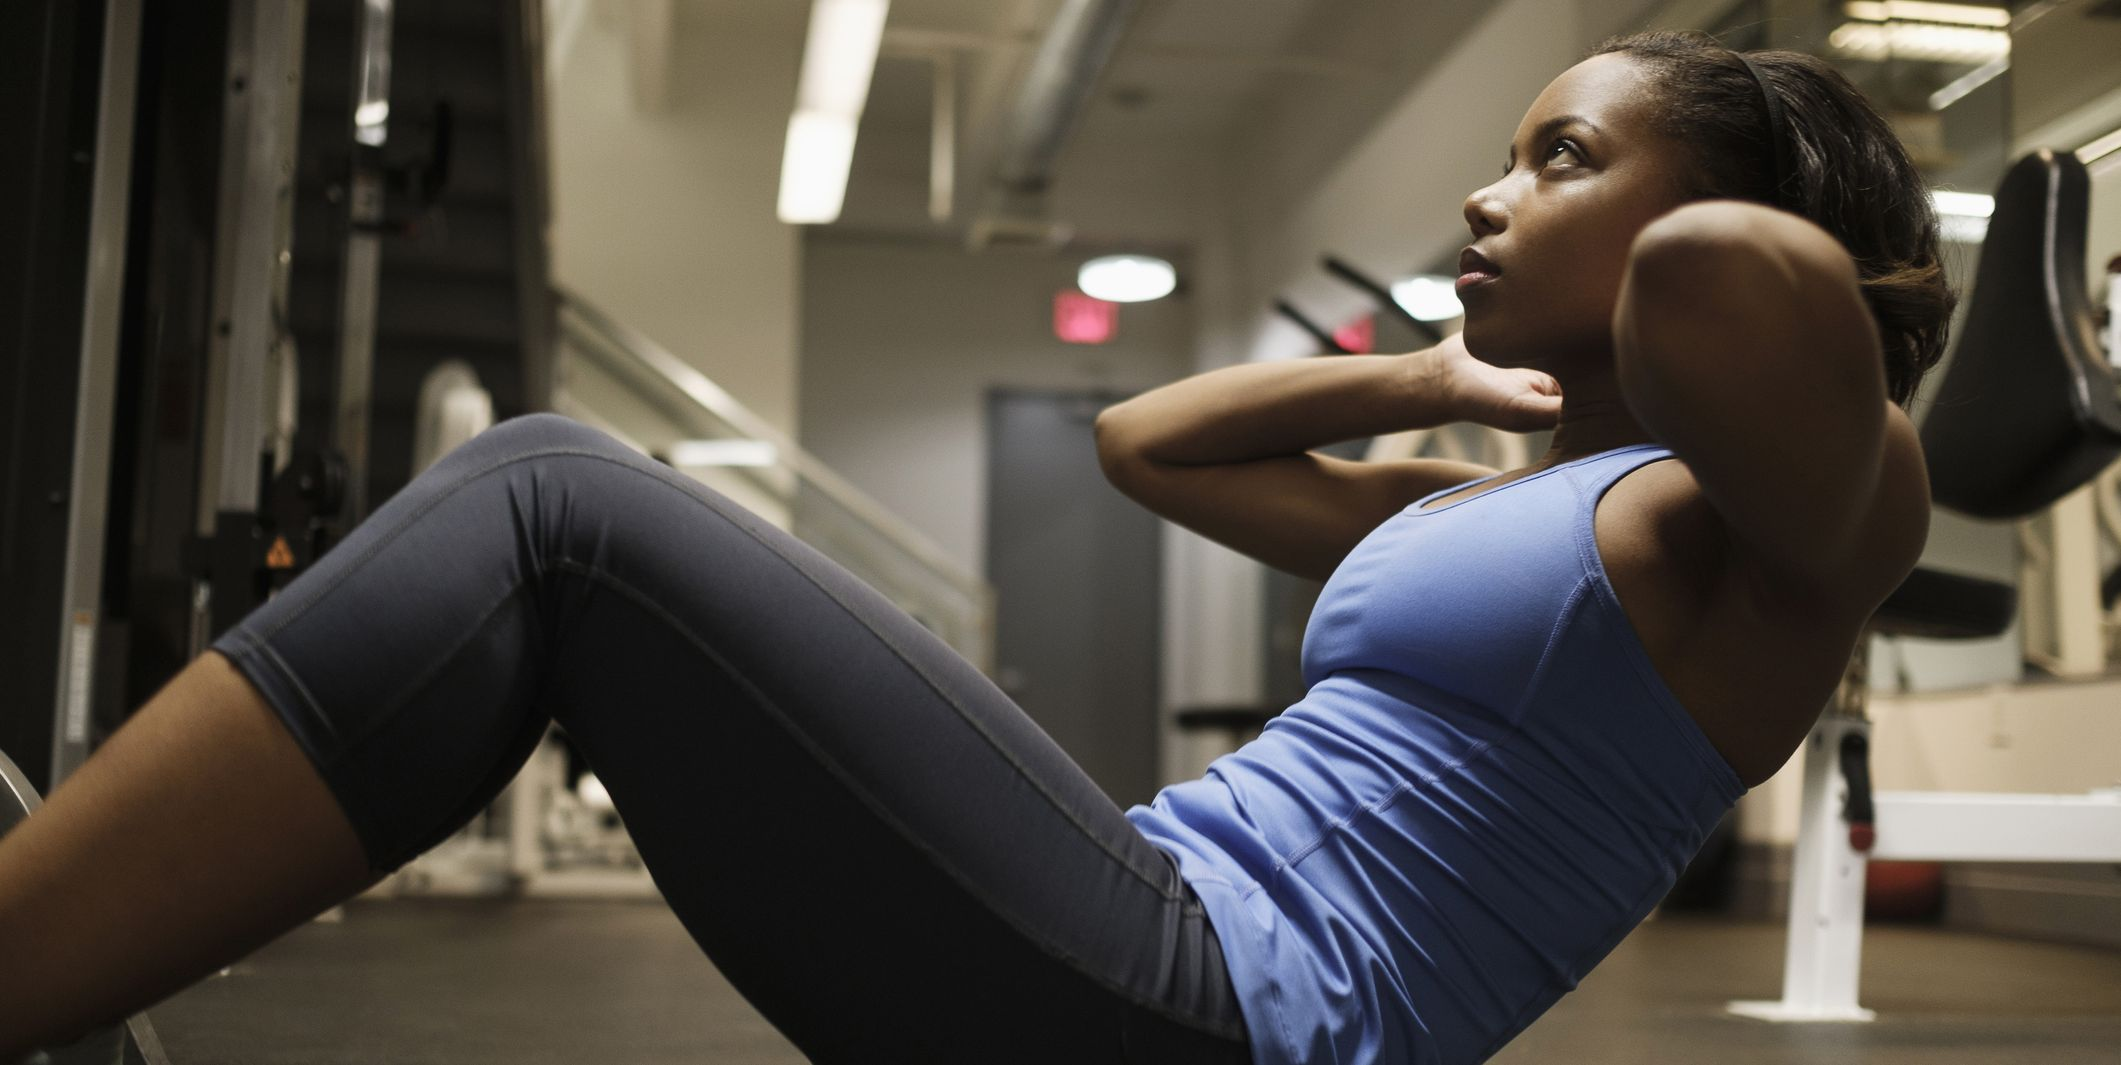 Mixed Race woman doing sit-up on floor at gymnasium